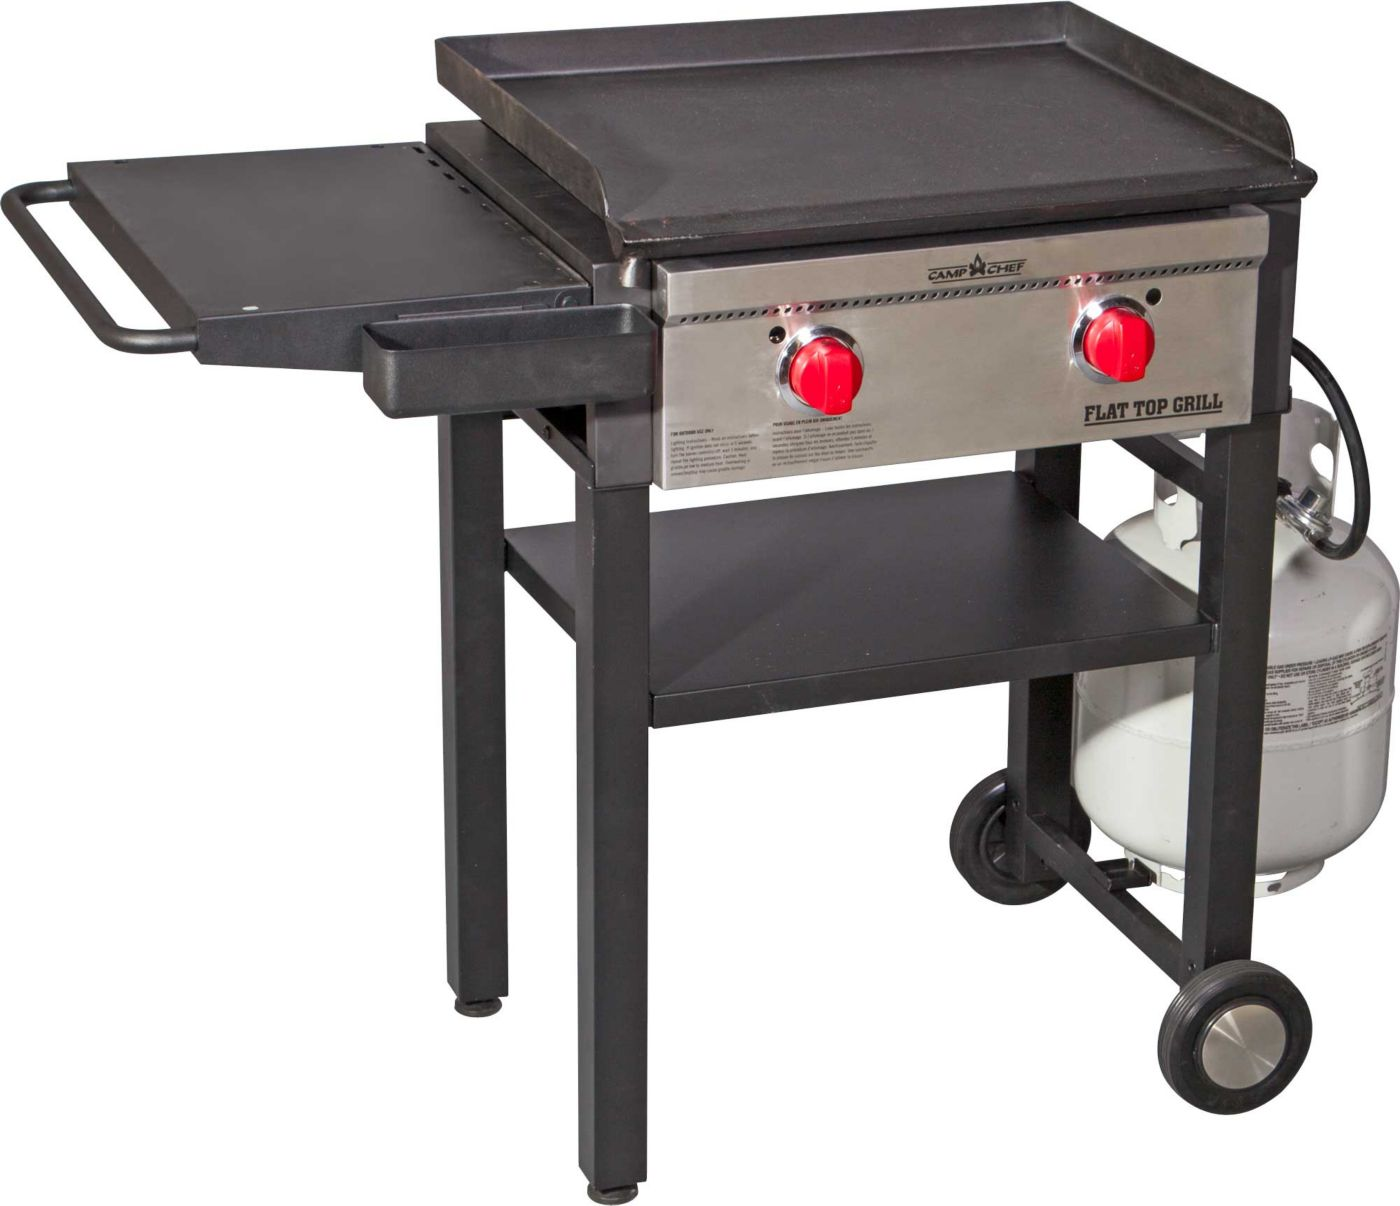 Camp Chef Flat Top Grill 475 LC